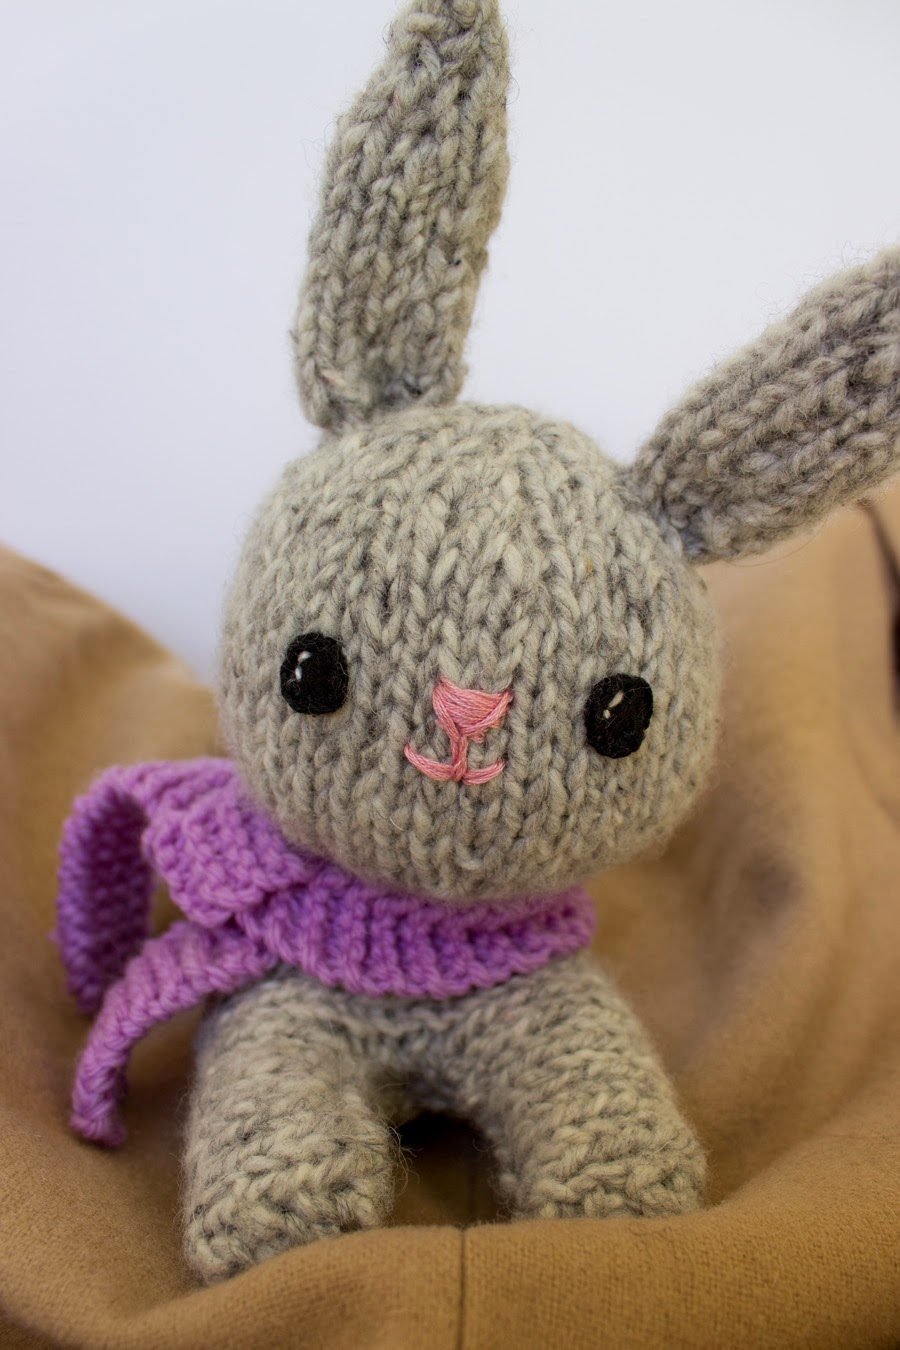 Amigurumi Knit Animals : Making It Well: Knitted Bunny